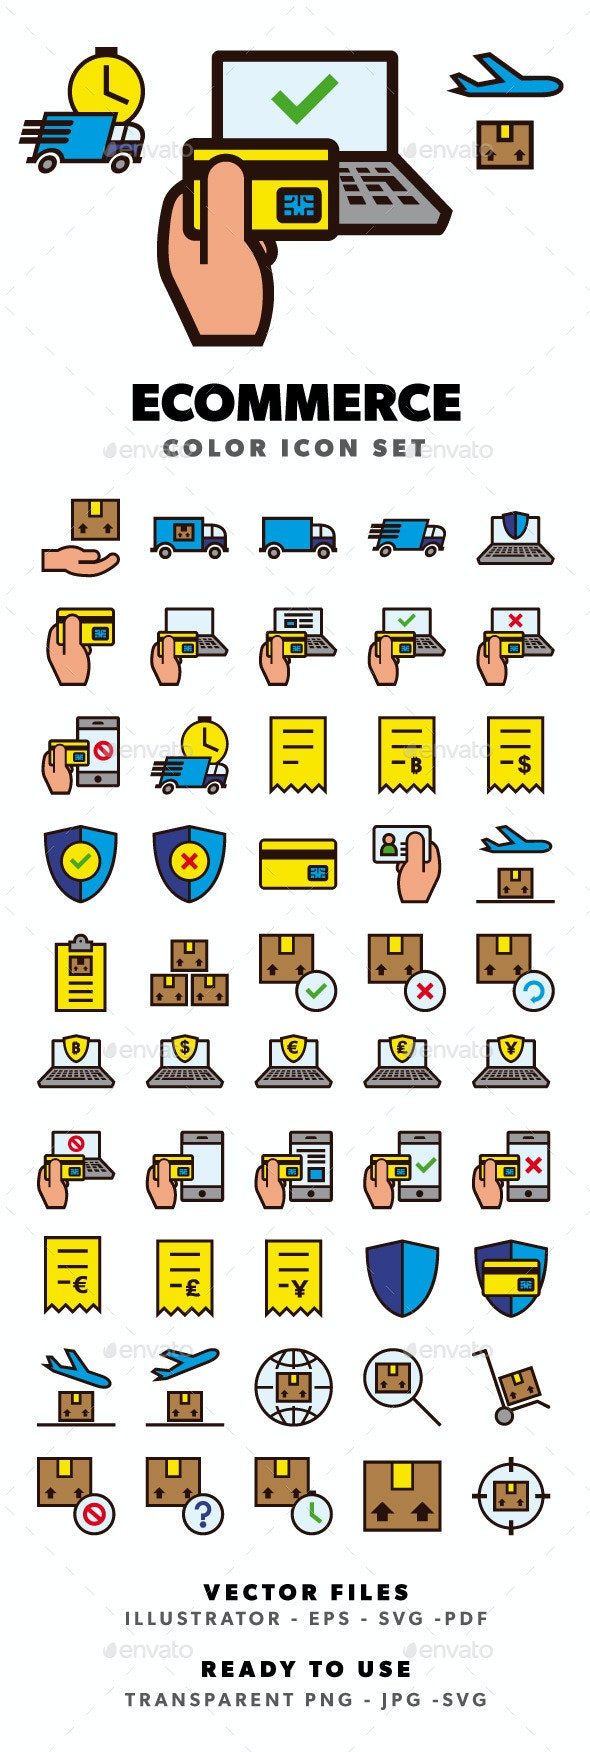 Ecommerce Color Icon Set - Business Icons